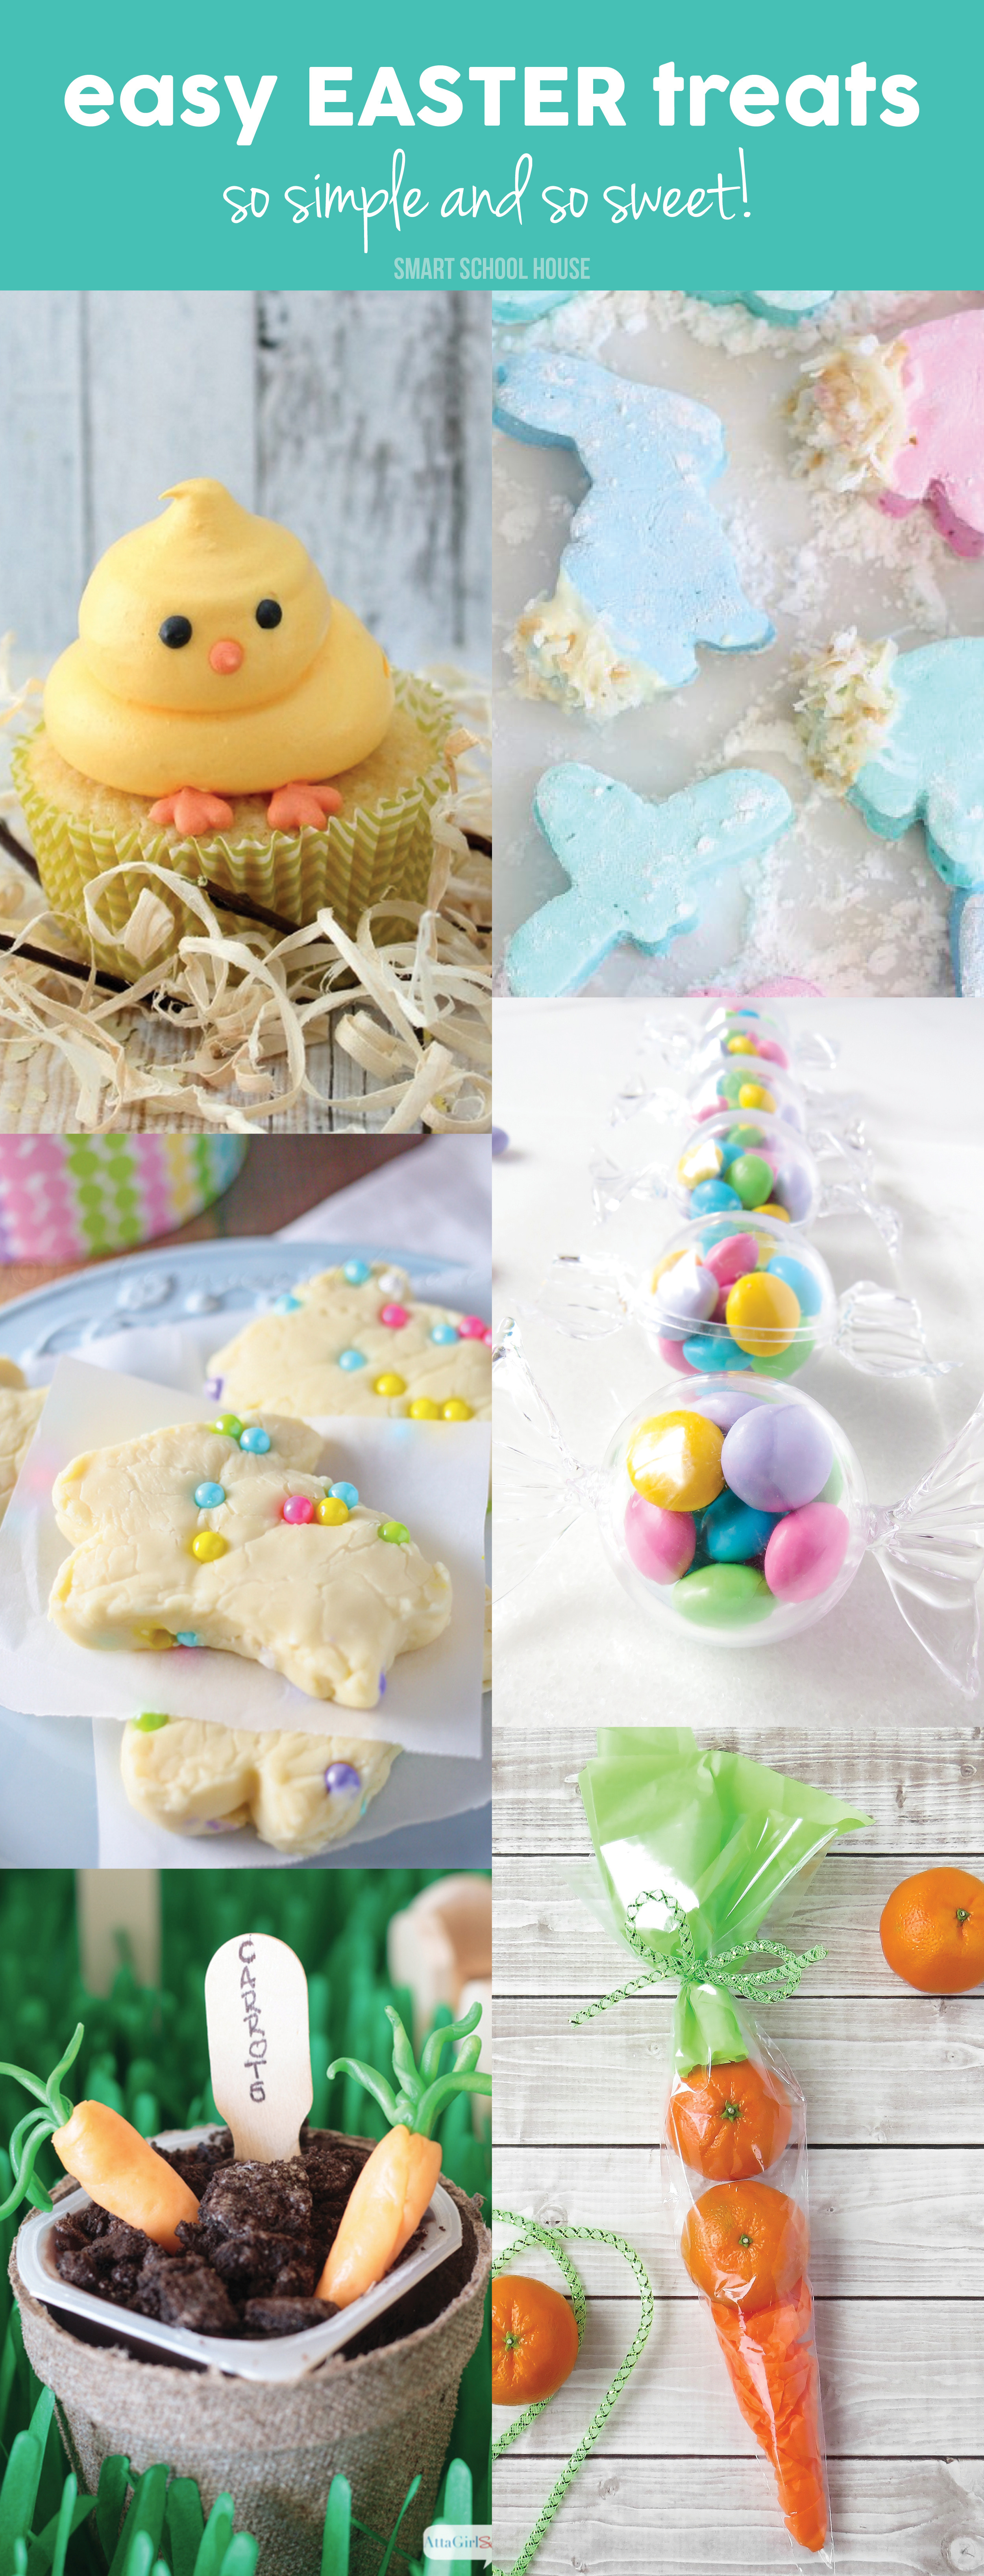 Quick Easy Easter Desserts  easy easter treats